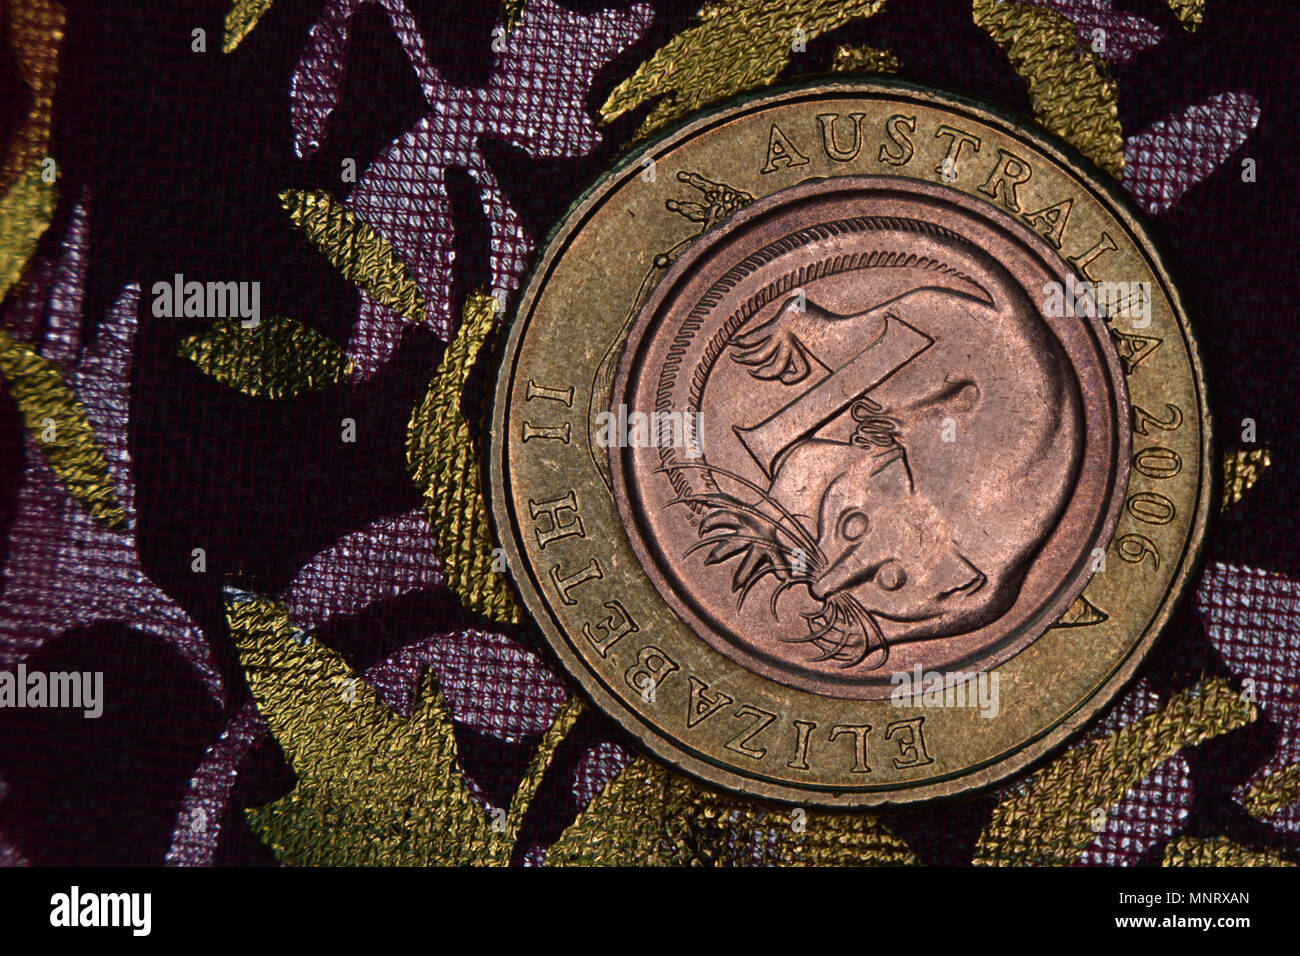 Finance pyramid - Australian coins stacked on each other. One cent coin discontinued in 1991 and withdrawn from circulation on the one dollar coin. - Stock Image